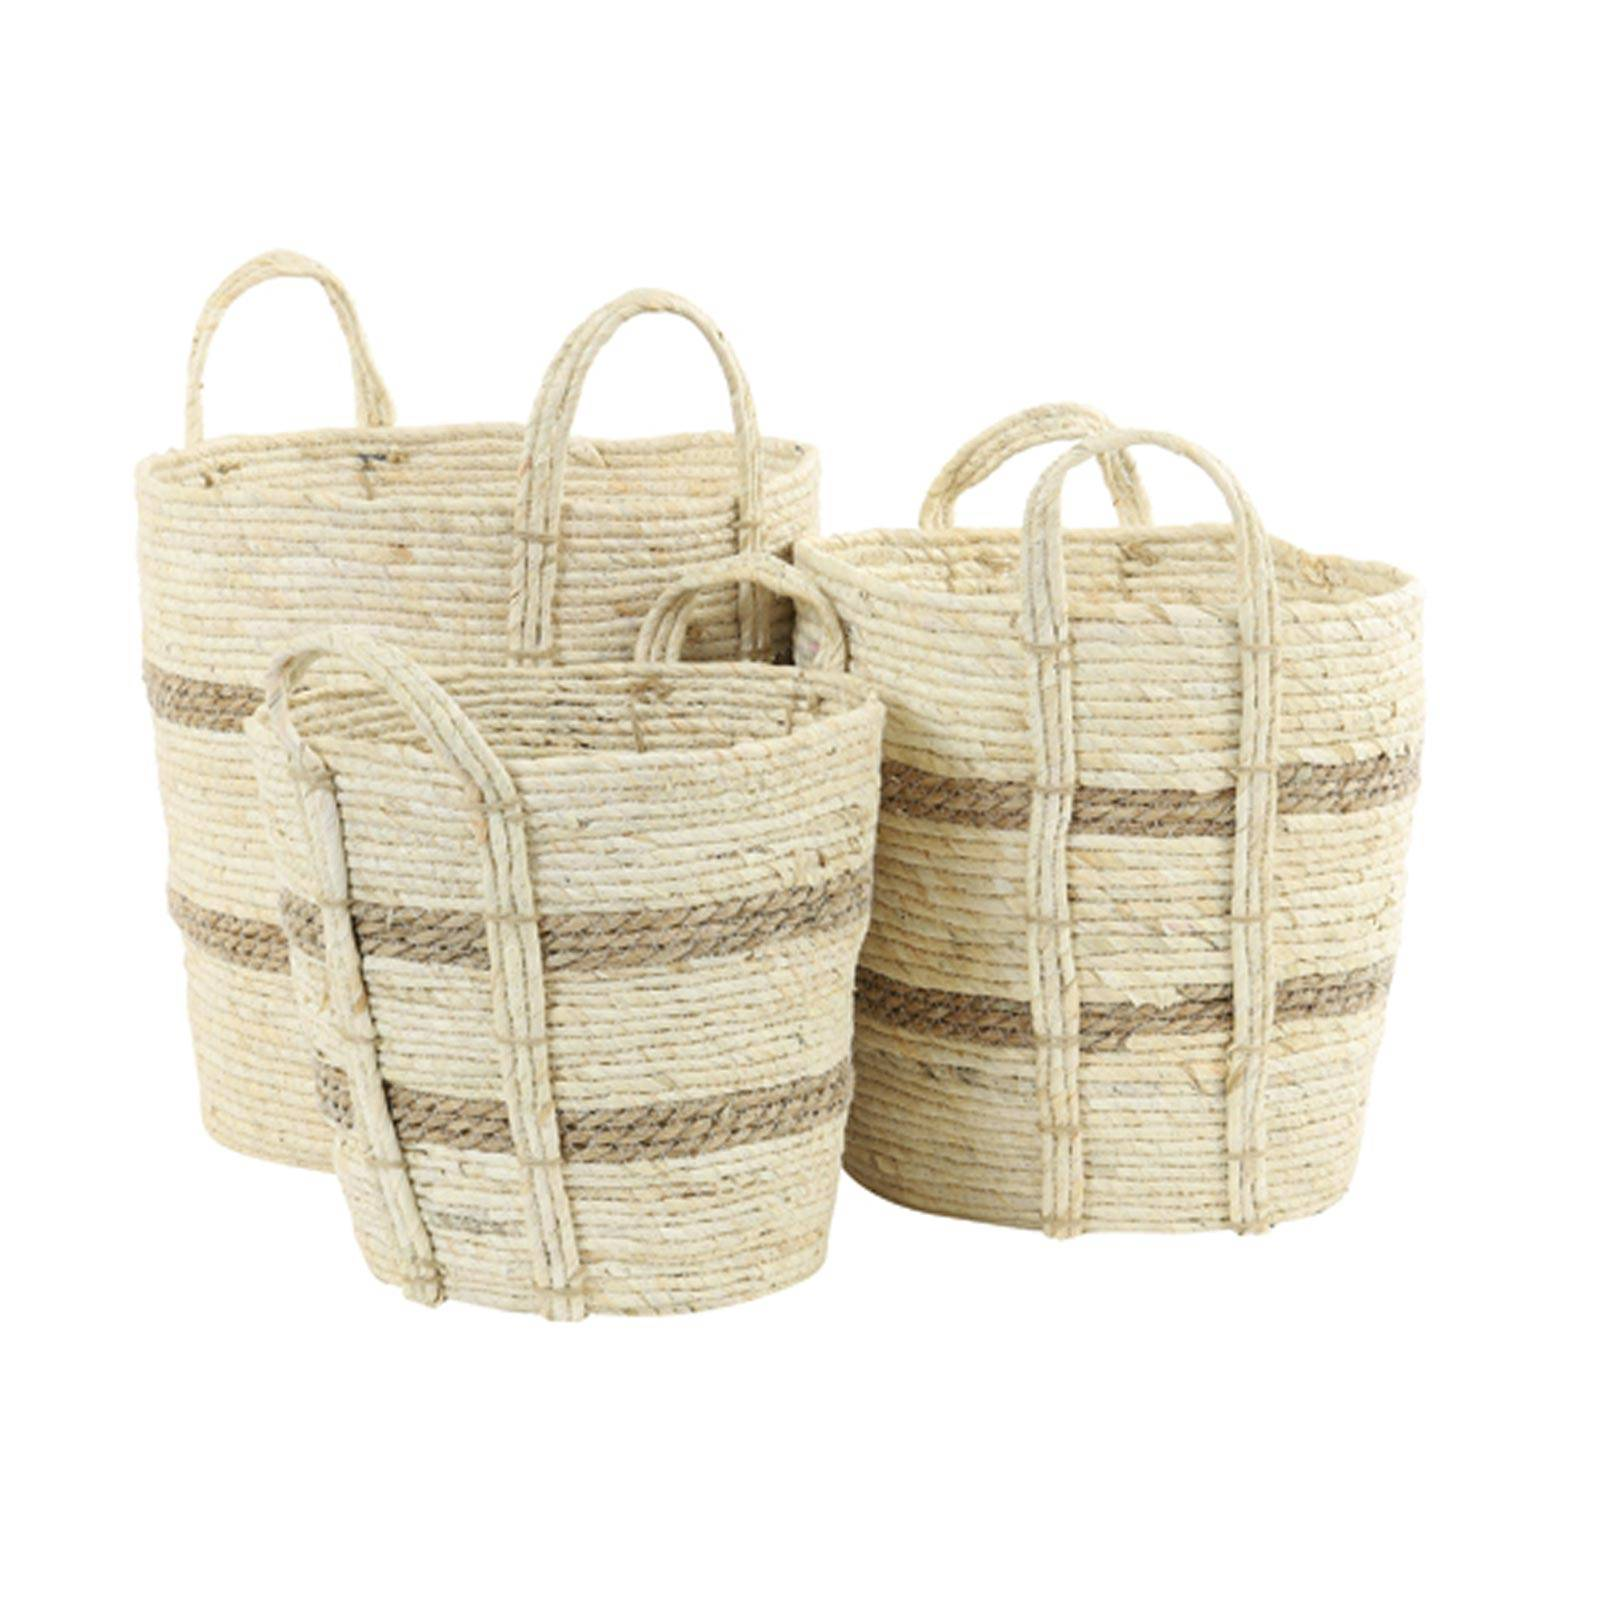 Small White Basket With Brown Stripes With Handles H: 30cm thumbnails